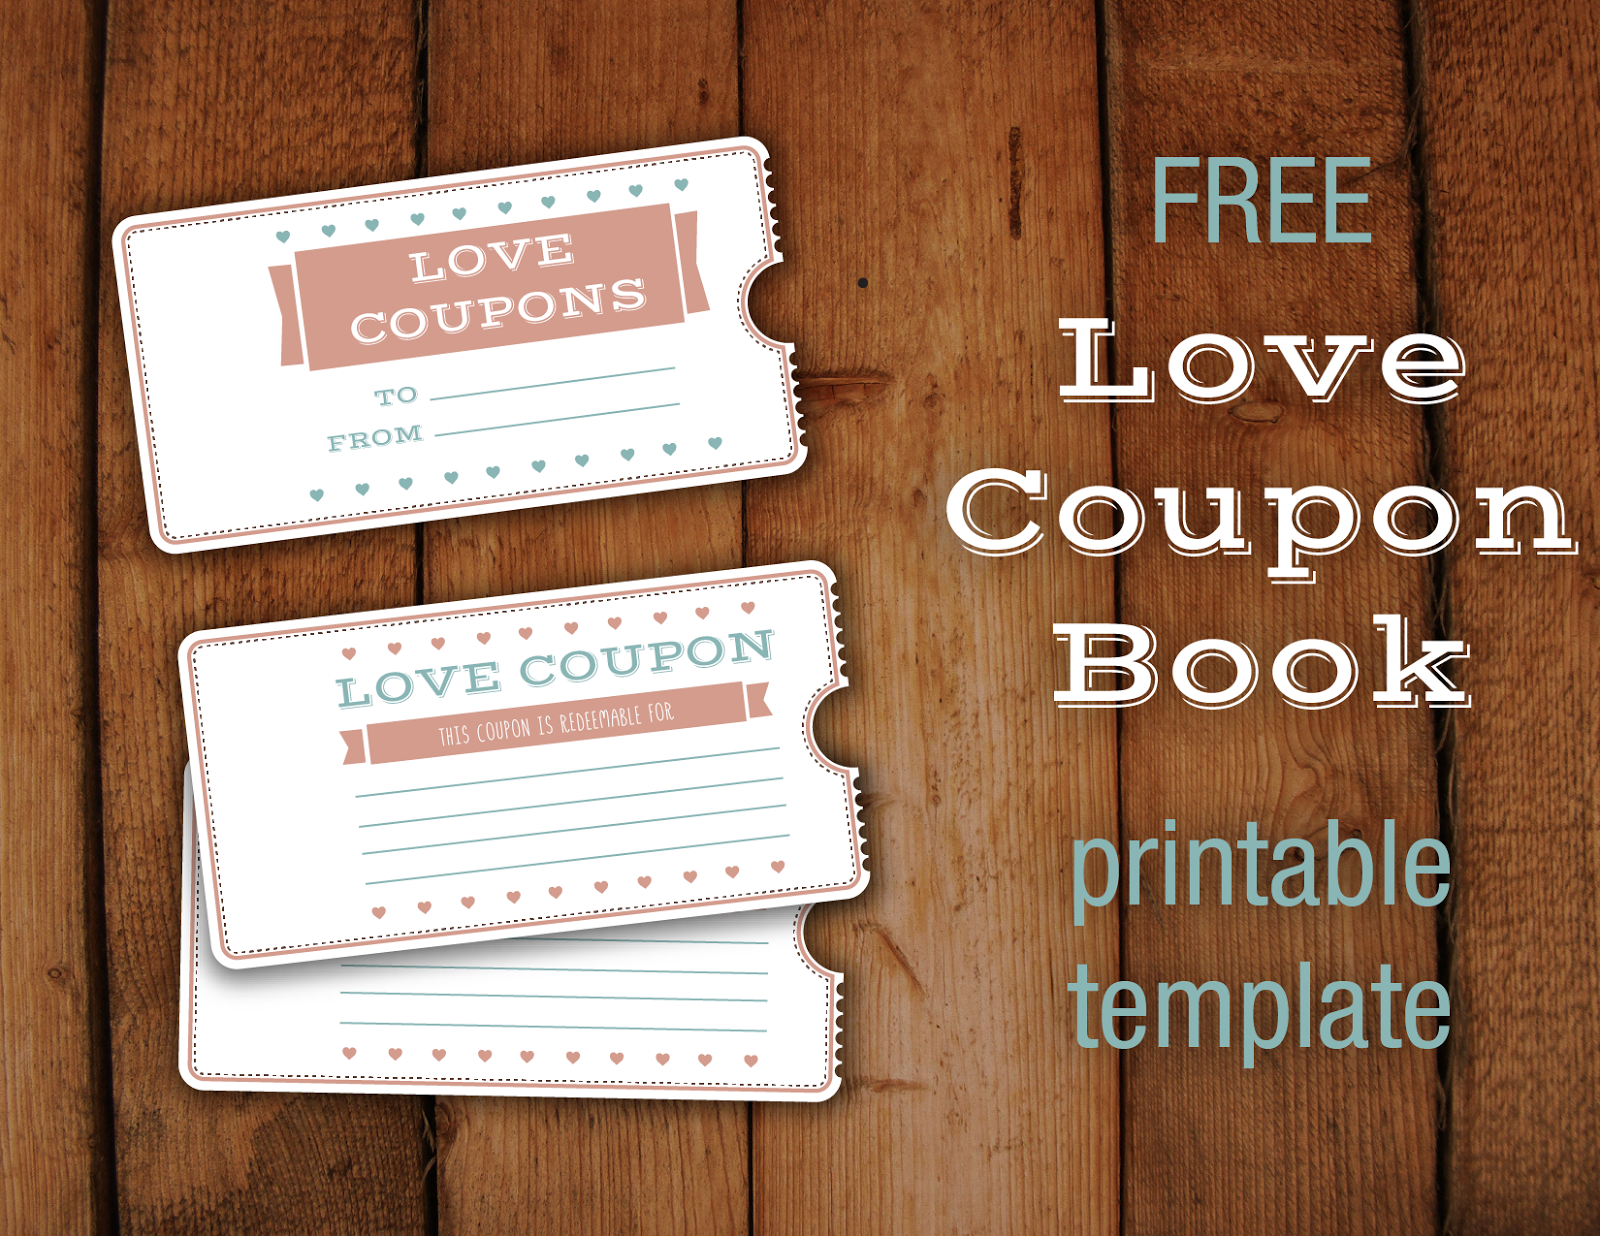 Free Valentine S Love Coupon Printable Booklet Template Love Coupons Booklet Template Coupon Book